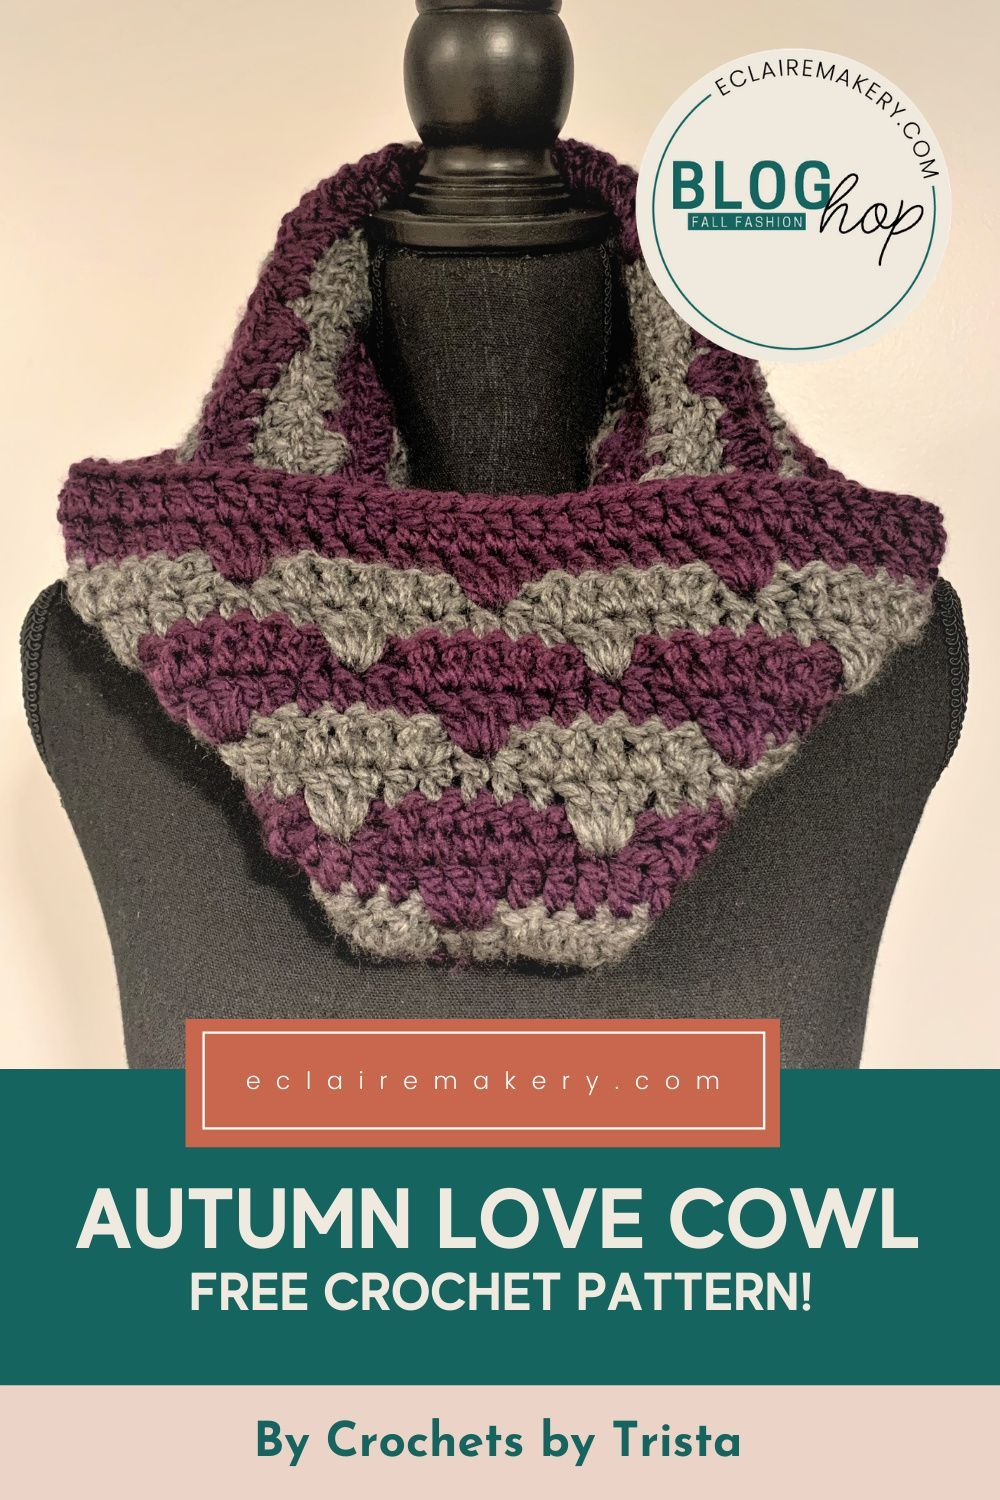 Fall is in the air, which brings pumpkin spice and all of the cozy crocheting! #freepatterns #crochet #accessories #makersgonnamake #fall #cowl